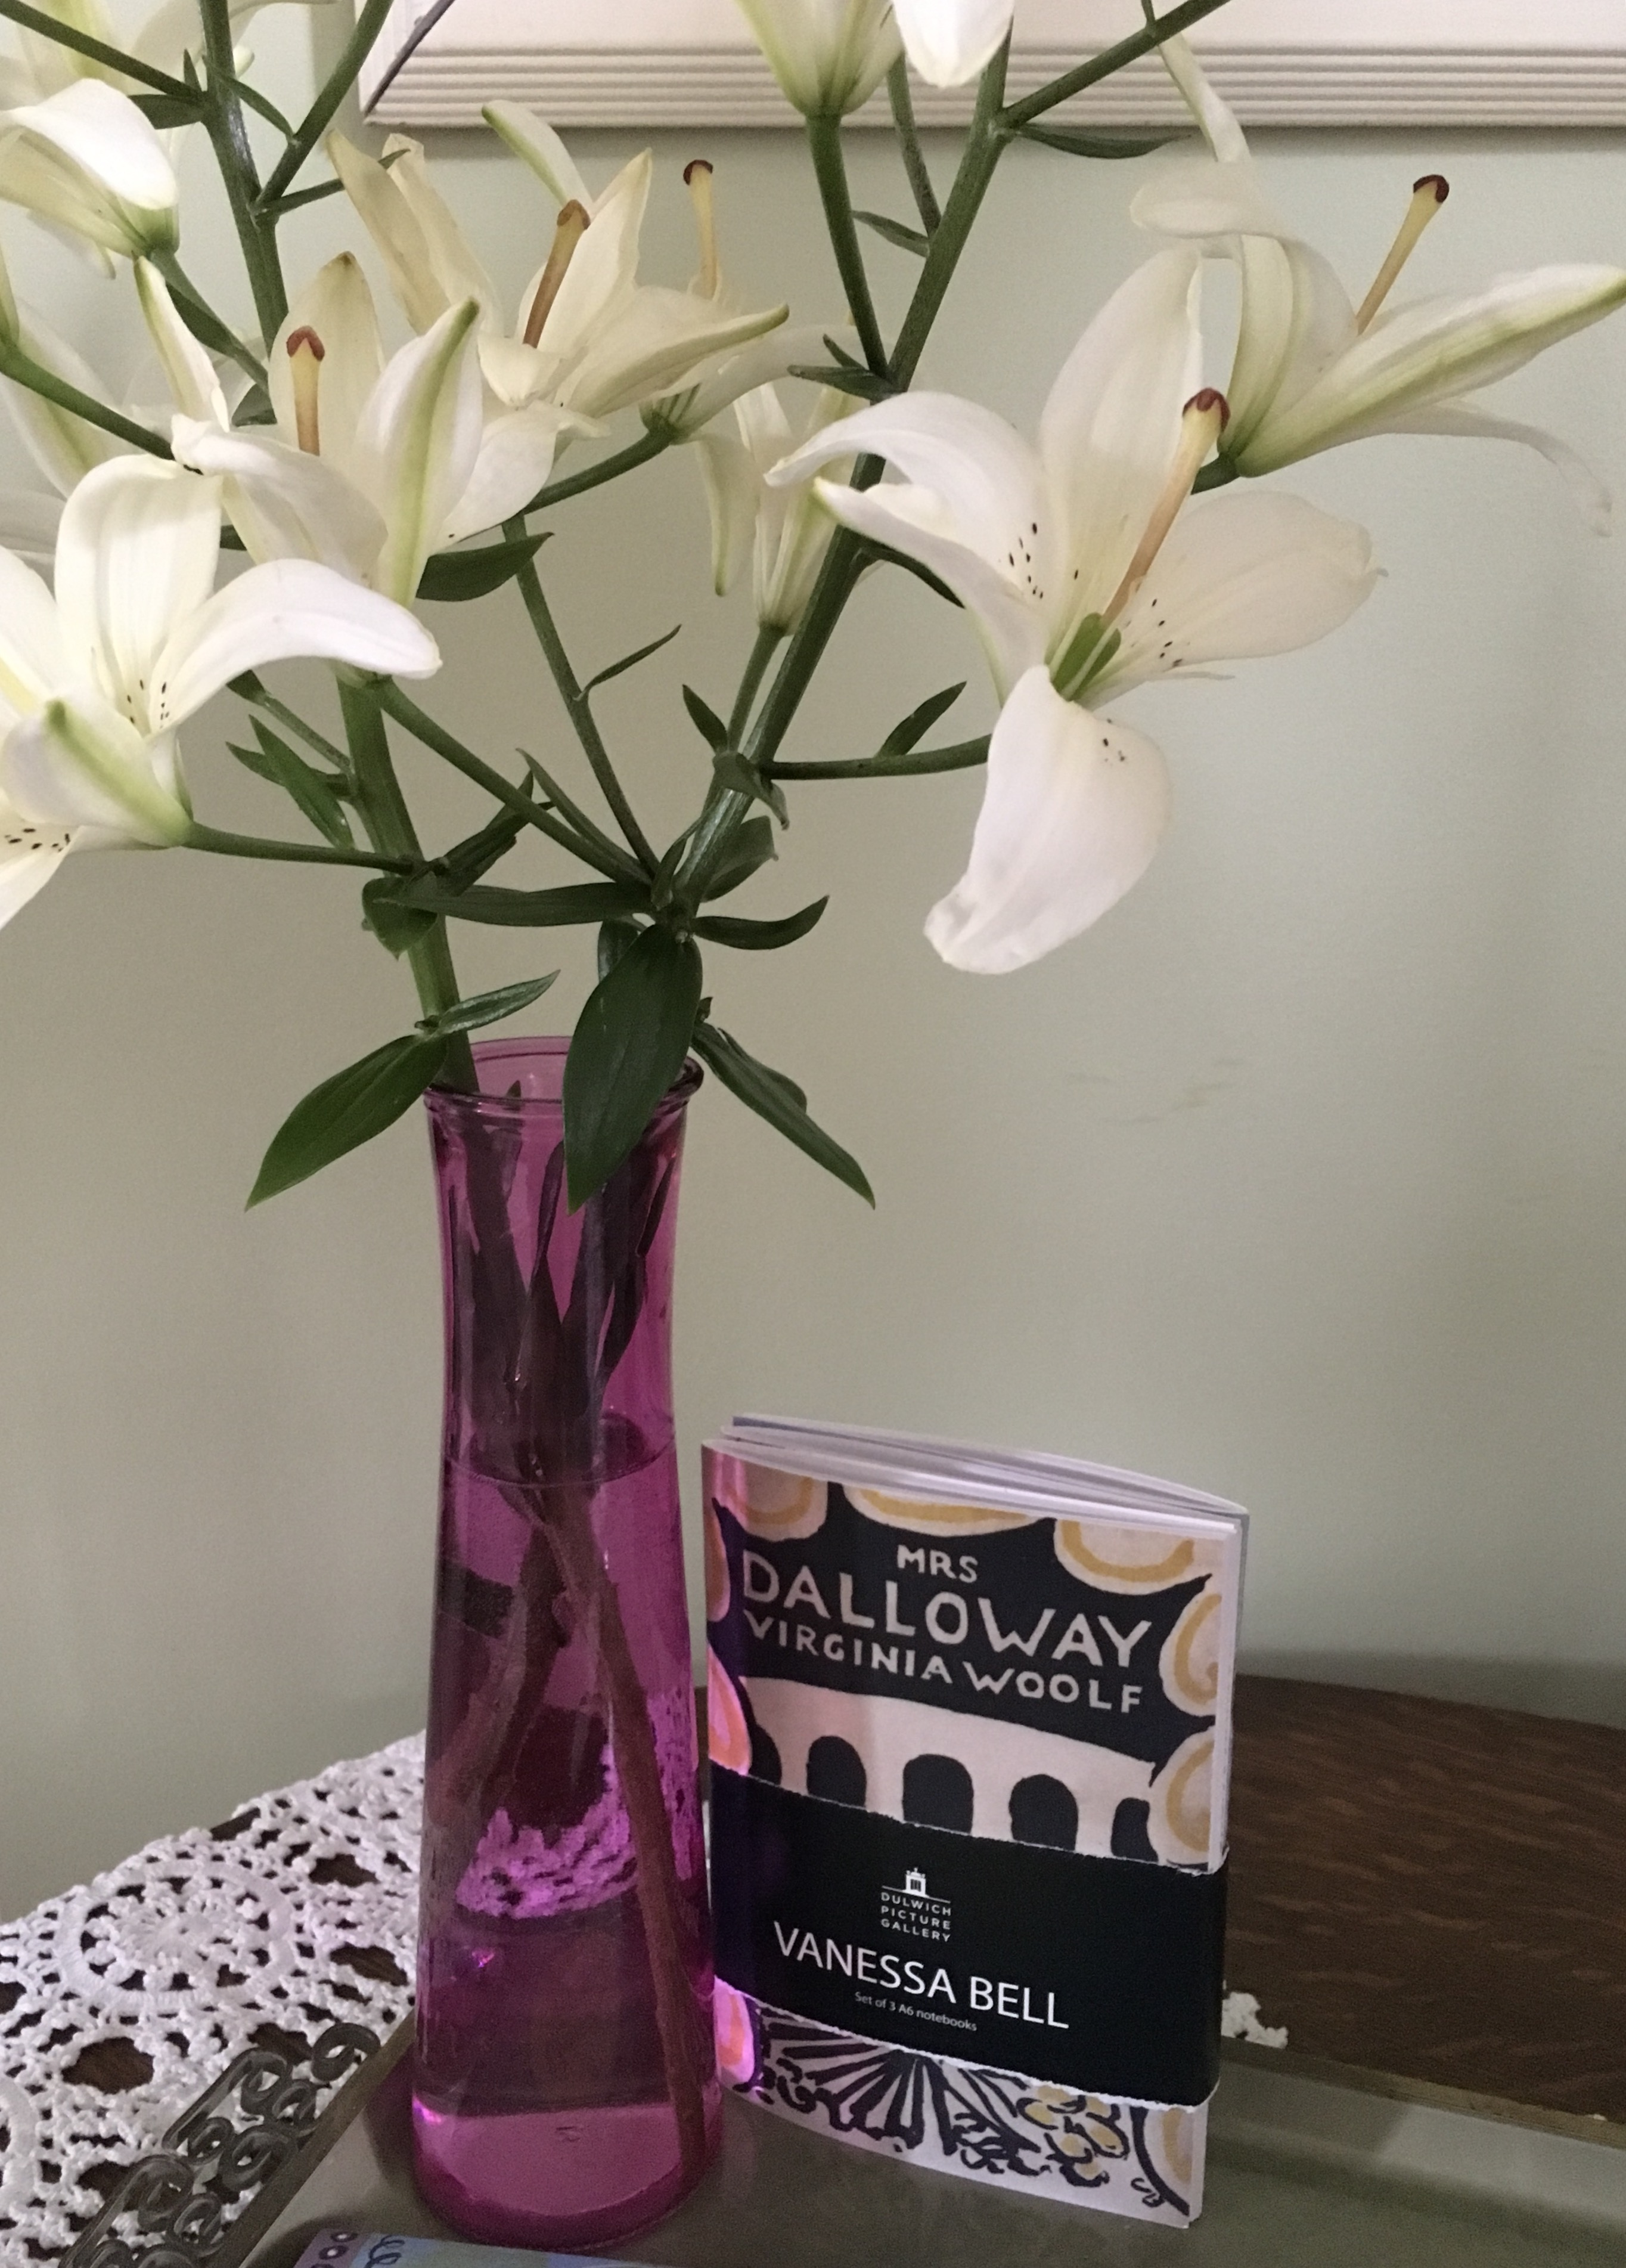 mrs dalloway the hours essay Virginia woolf's novel mrs dalloway (1925) and stephen daldry's film the hours (2002), an extrapolation, both examine overlapping and interwoven ideas.